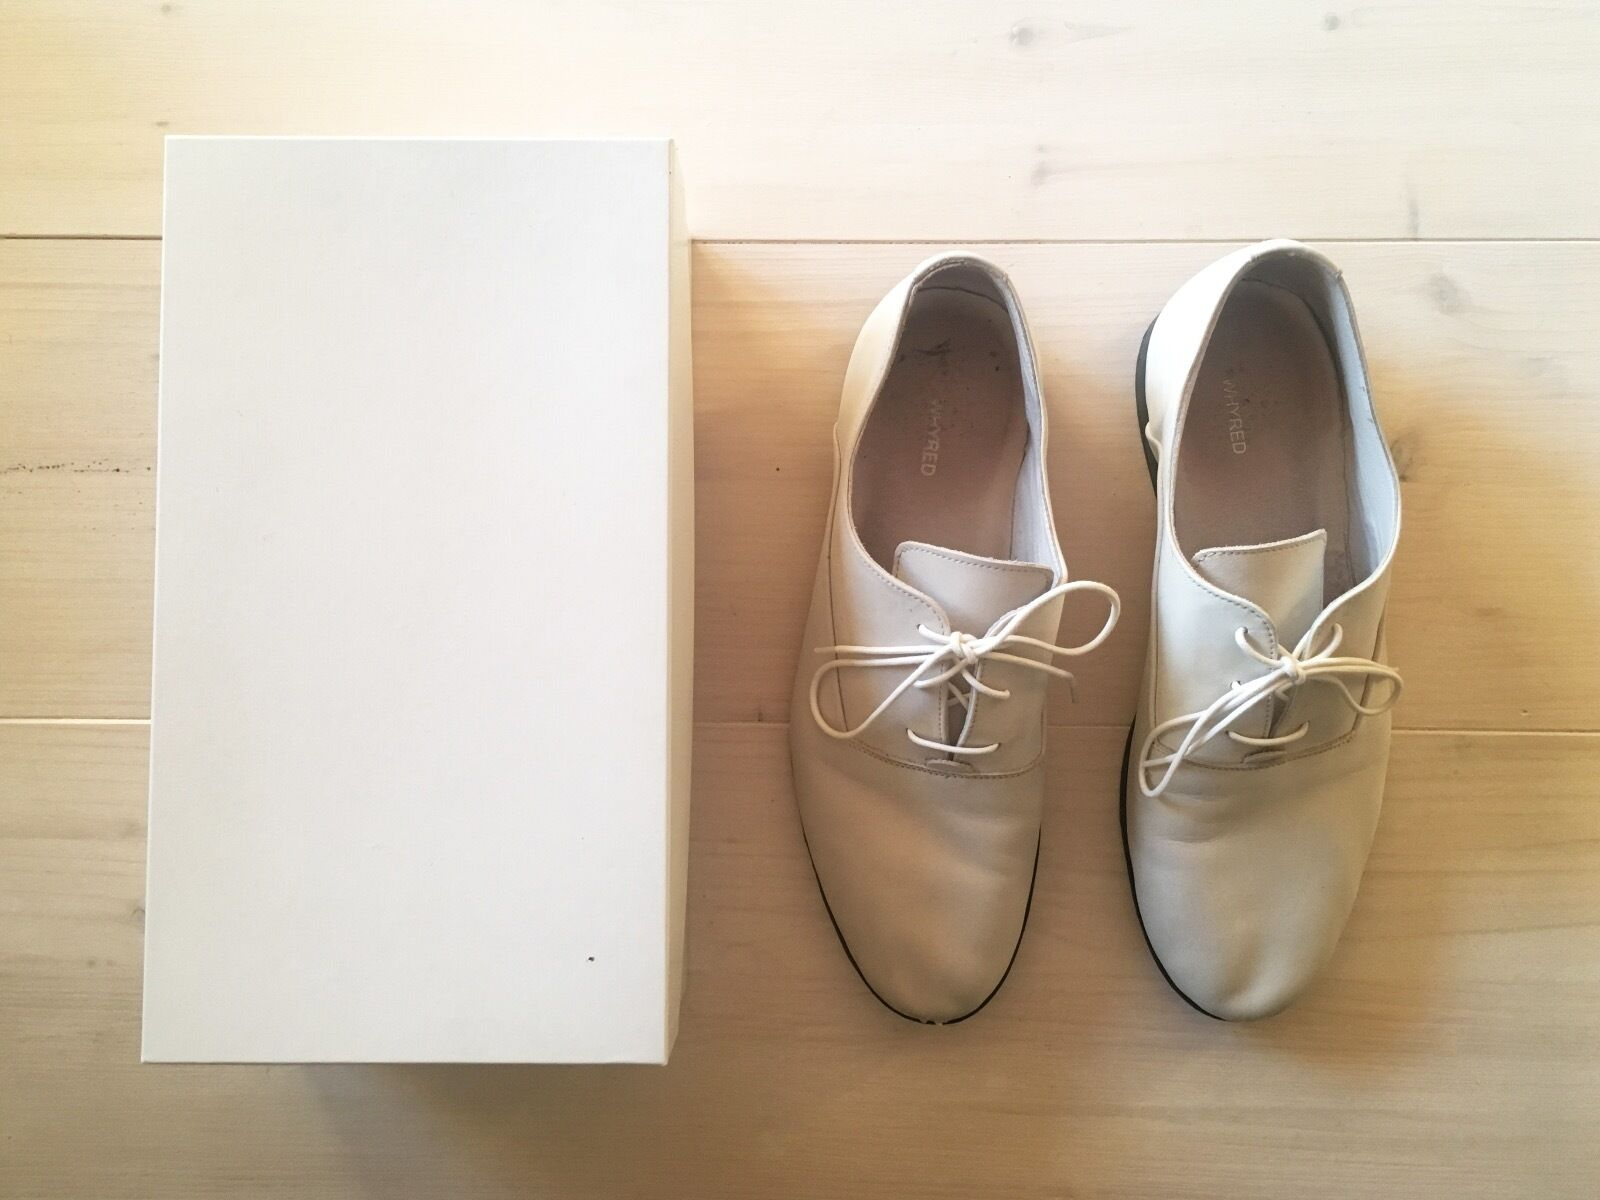 WHYRED off white leather shoes, size 44, Stockholm, great condition